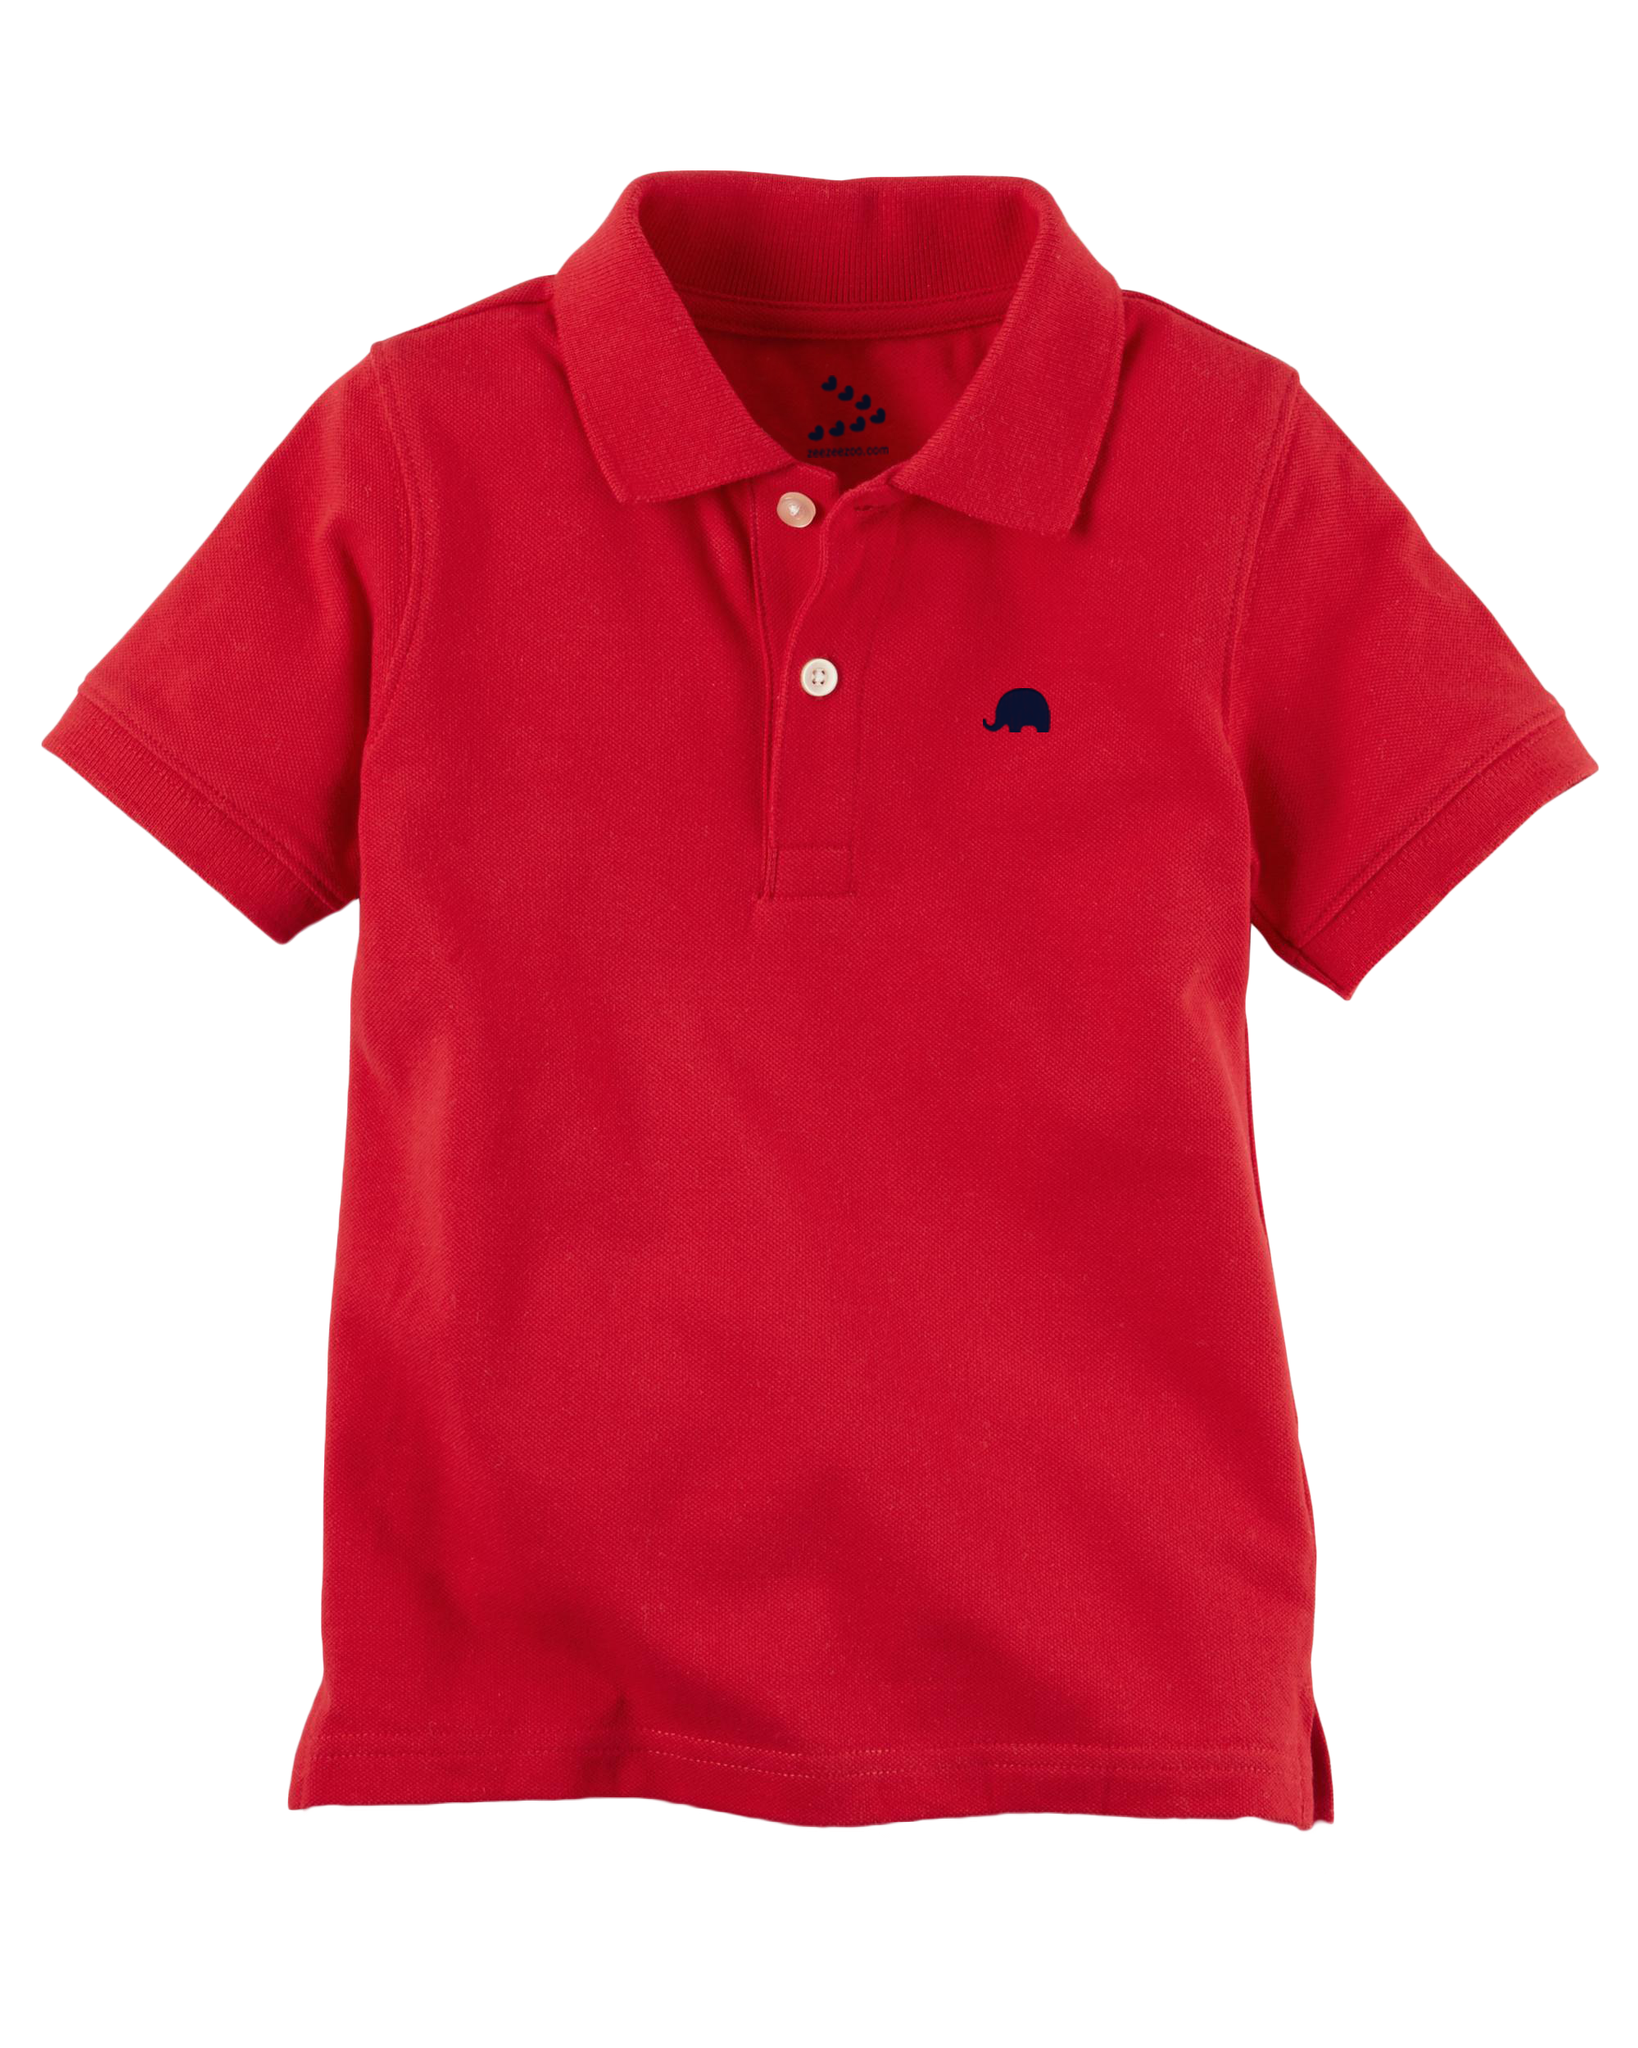 Piqué Polo Tee - Red